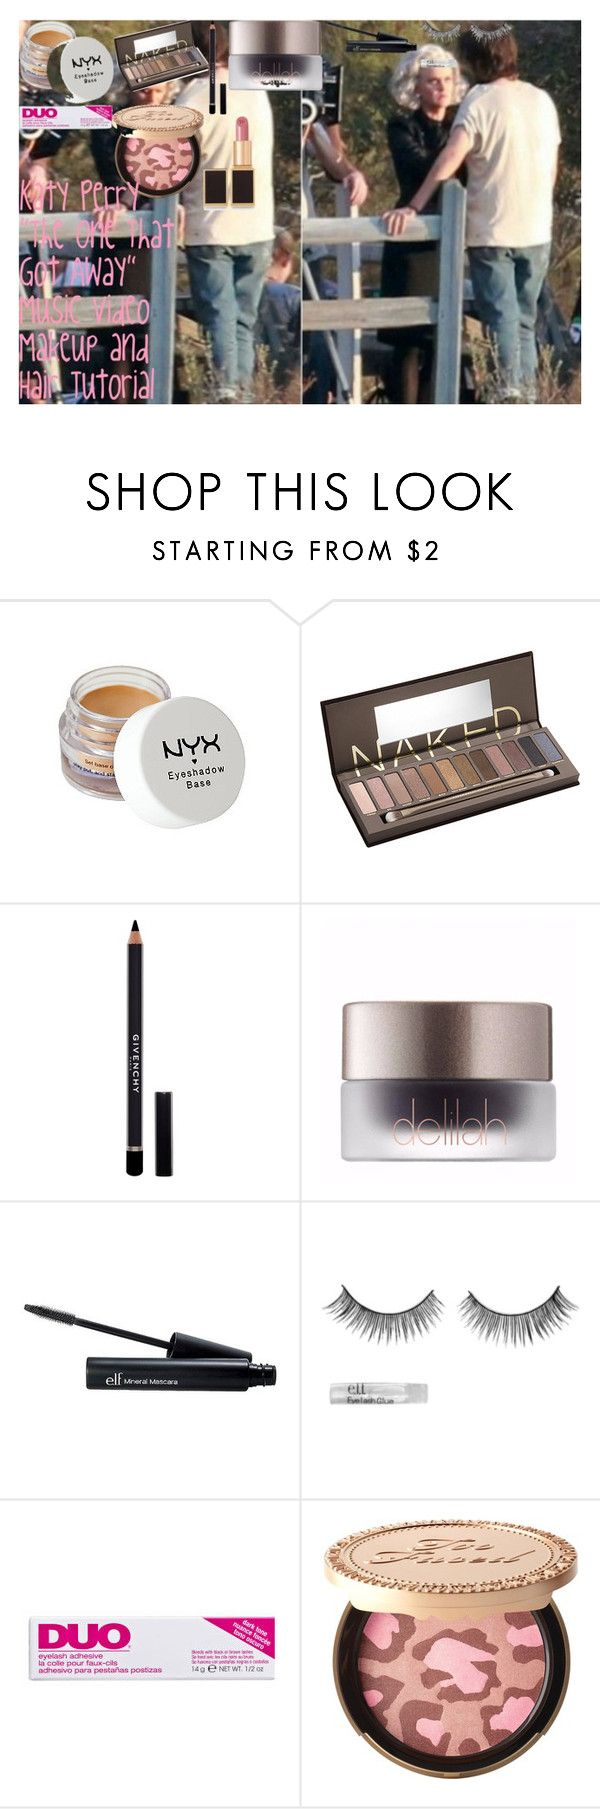 """Katy Perry ""The One That Got Away"" Music Video Makeup and Hair Tutorial"" by oroartye-1 on Polyvore featuring beauty, Peek, NYX, Urban Decay, Givenchy, e.l.f., DUO, Too Faced Cosmetics and Tom Ford"